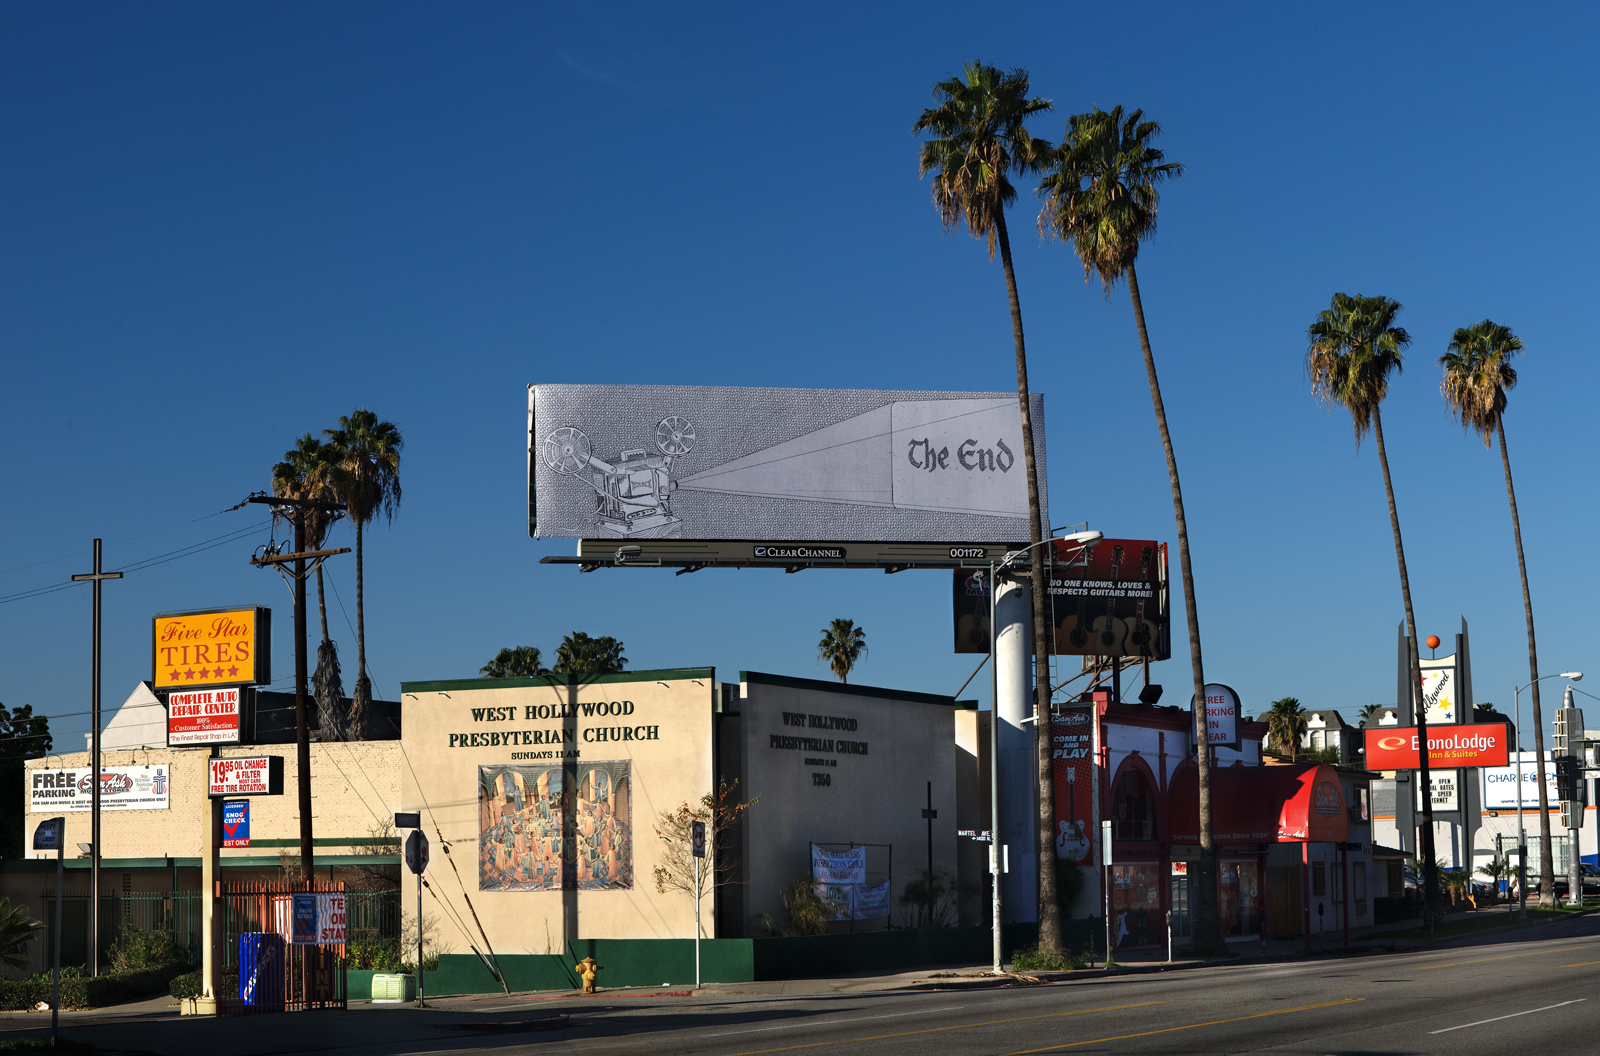 Jennifer Bornstein's billboard at Sunset and Martell suggests ominous things. For billboards themselves, for the film industry? Photo by Gerard Smulevich.